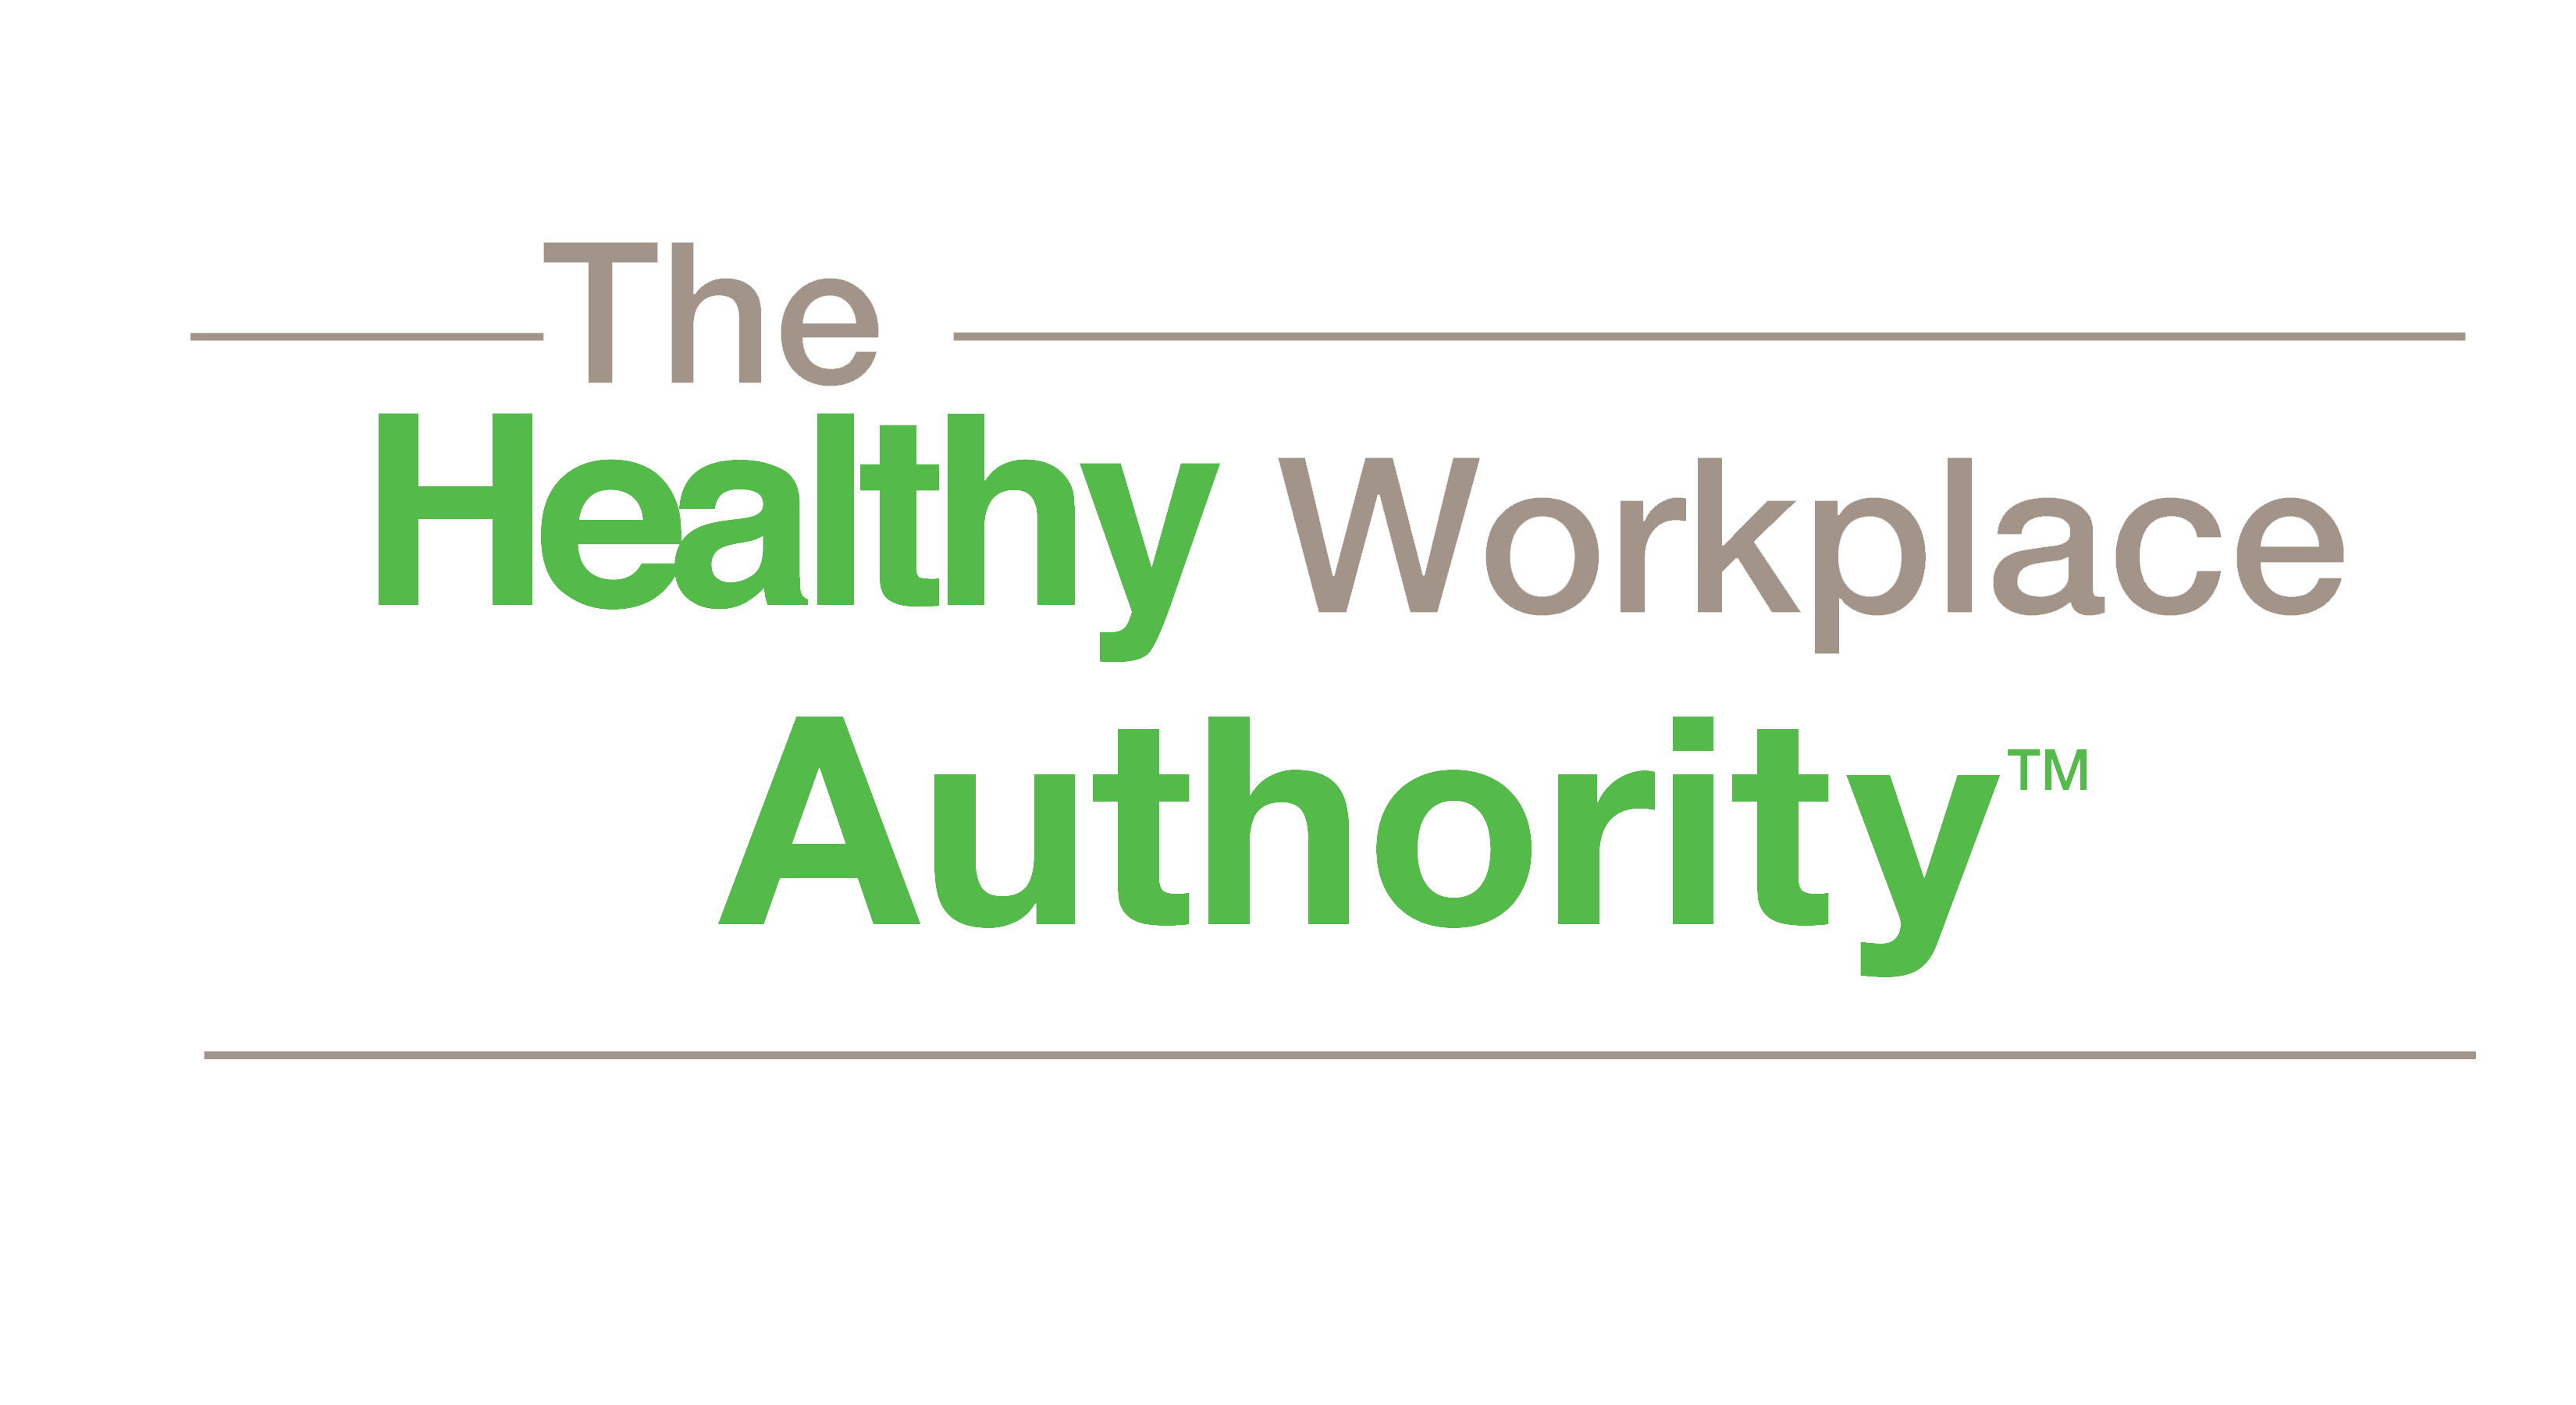 Healthy Workplace Authority Graphic